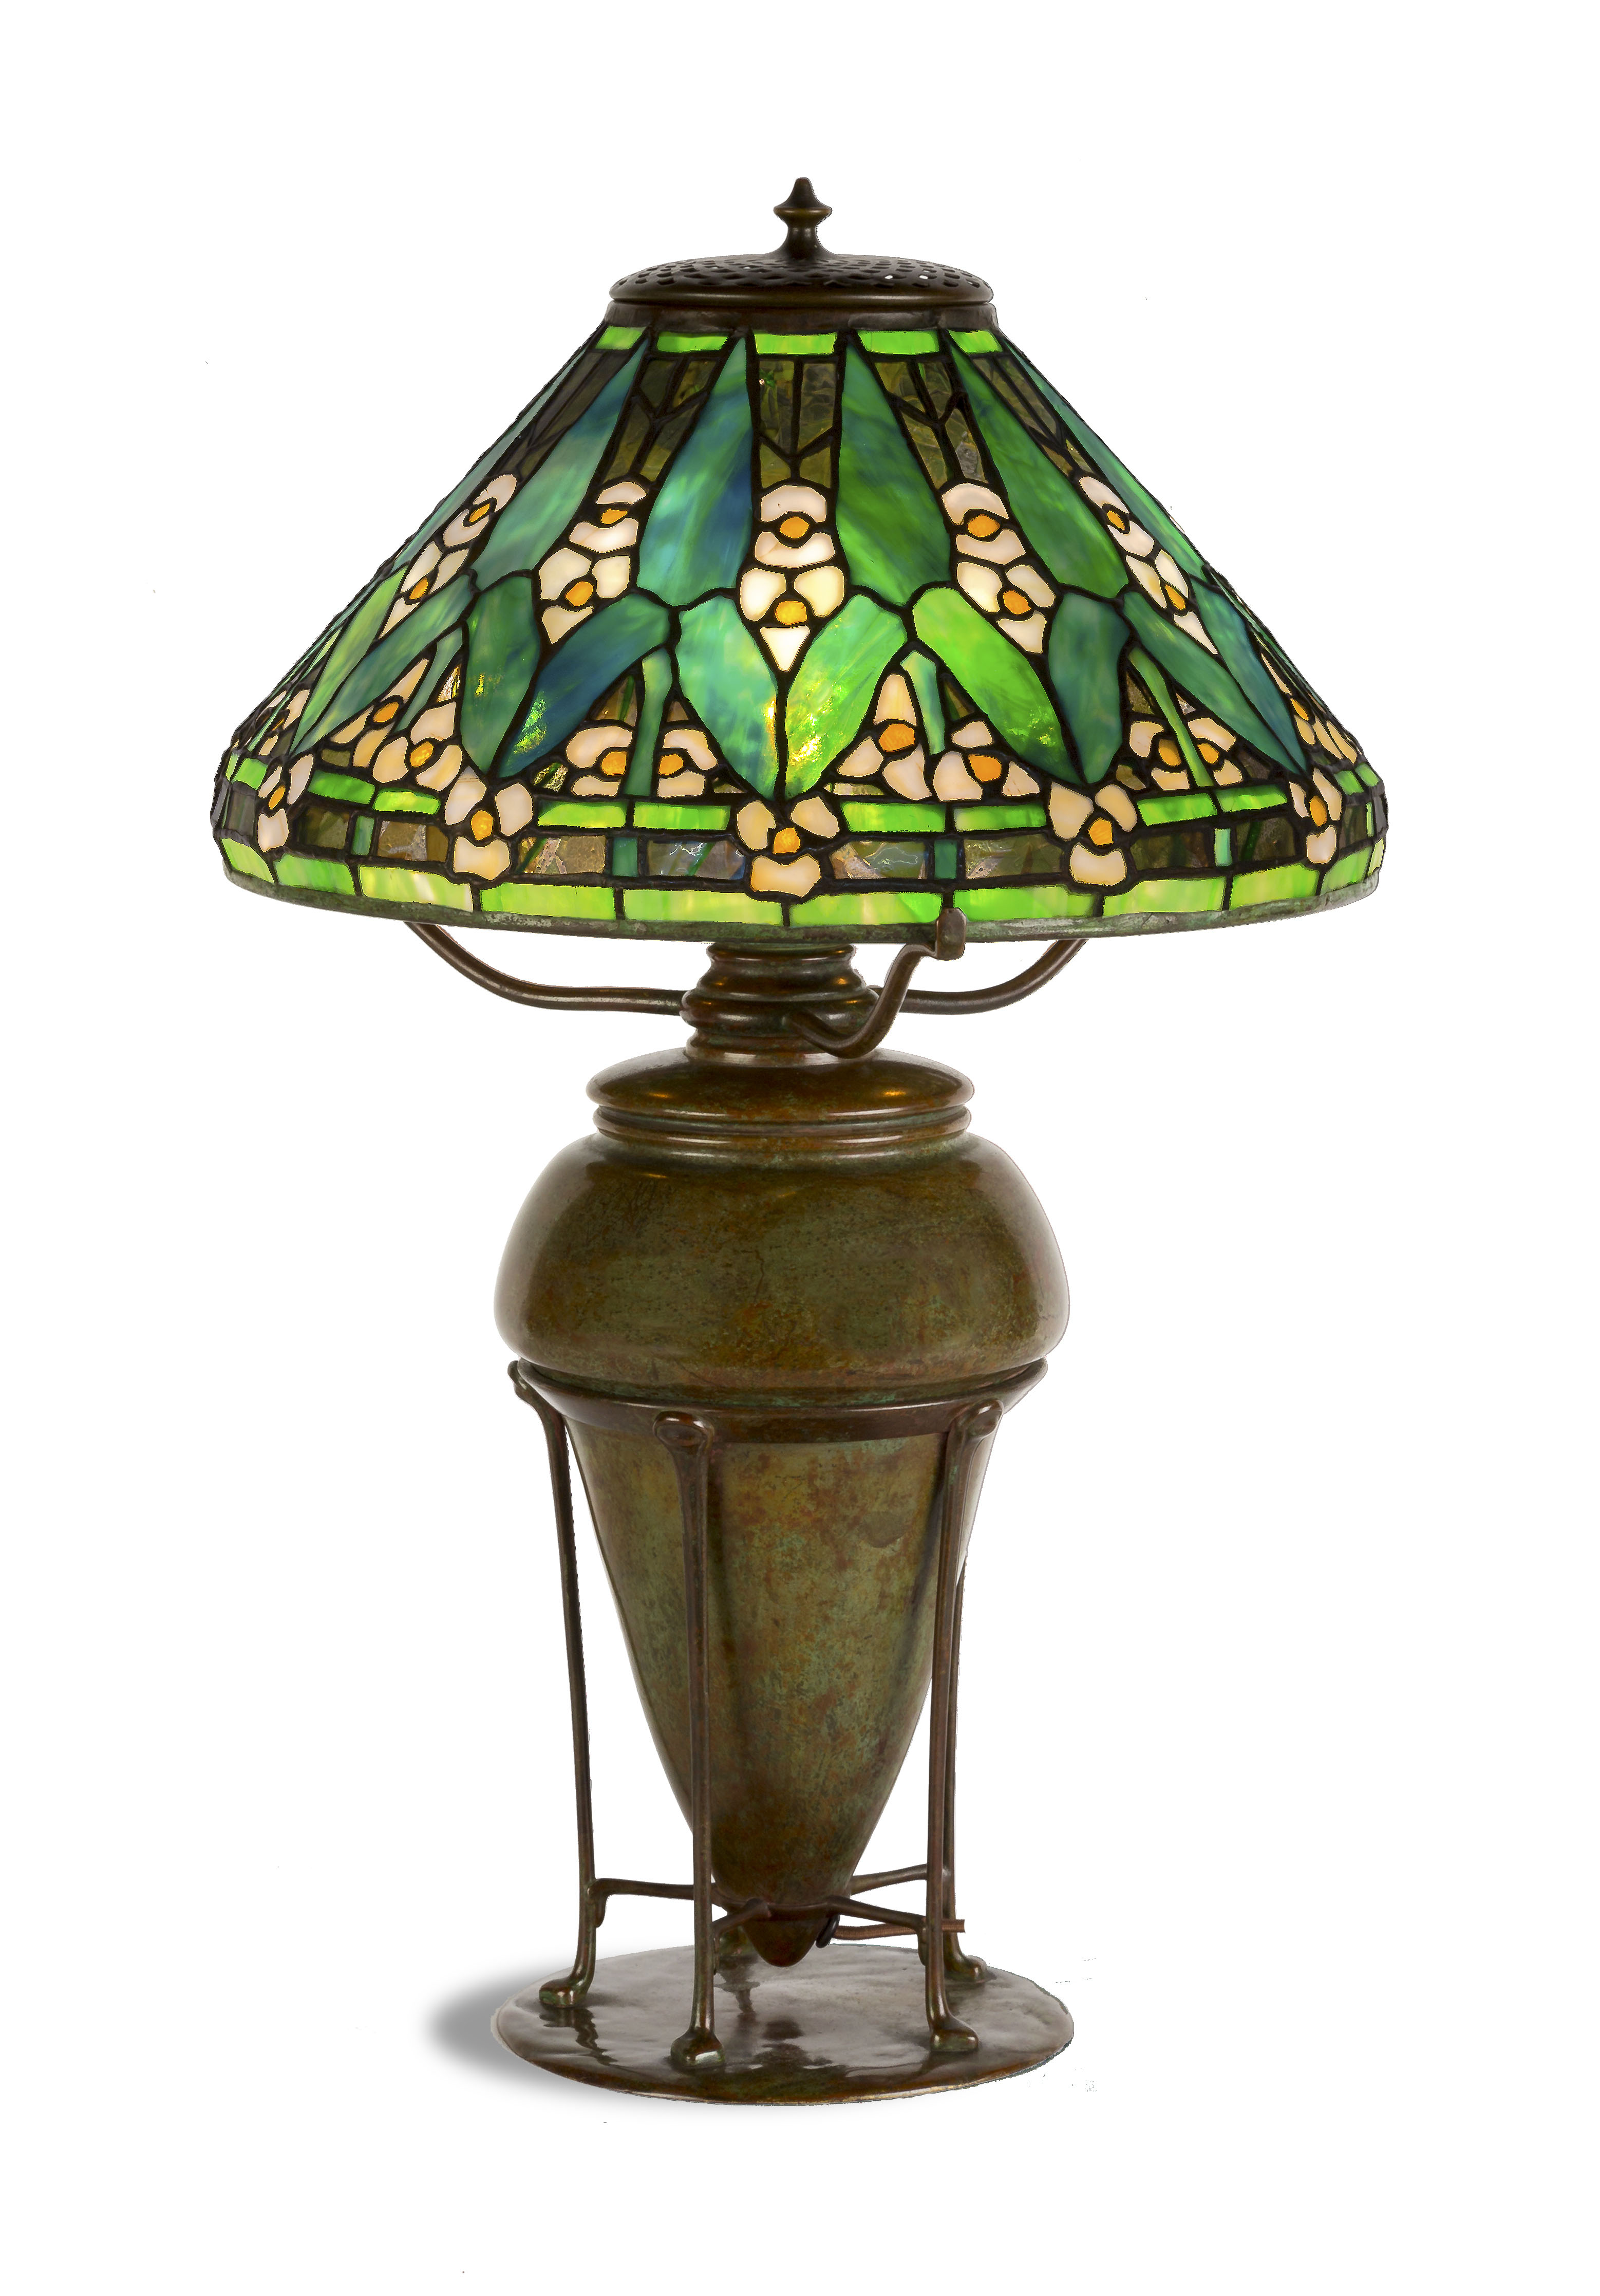 Tiffany Studios (N.Y.) leaded glass and patinated bronze Arrowroot table lamp with a 14 inch shade ($62,500).